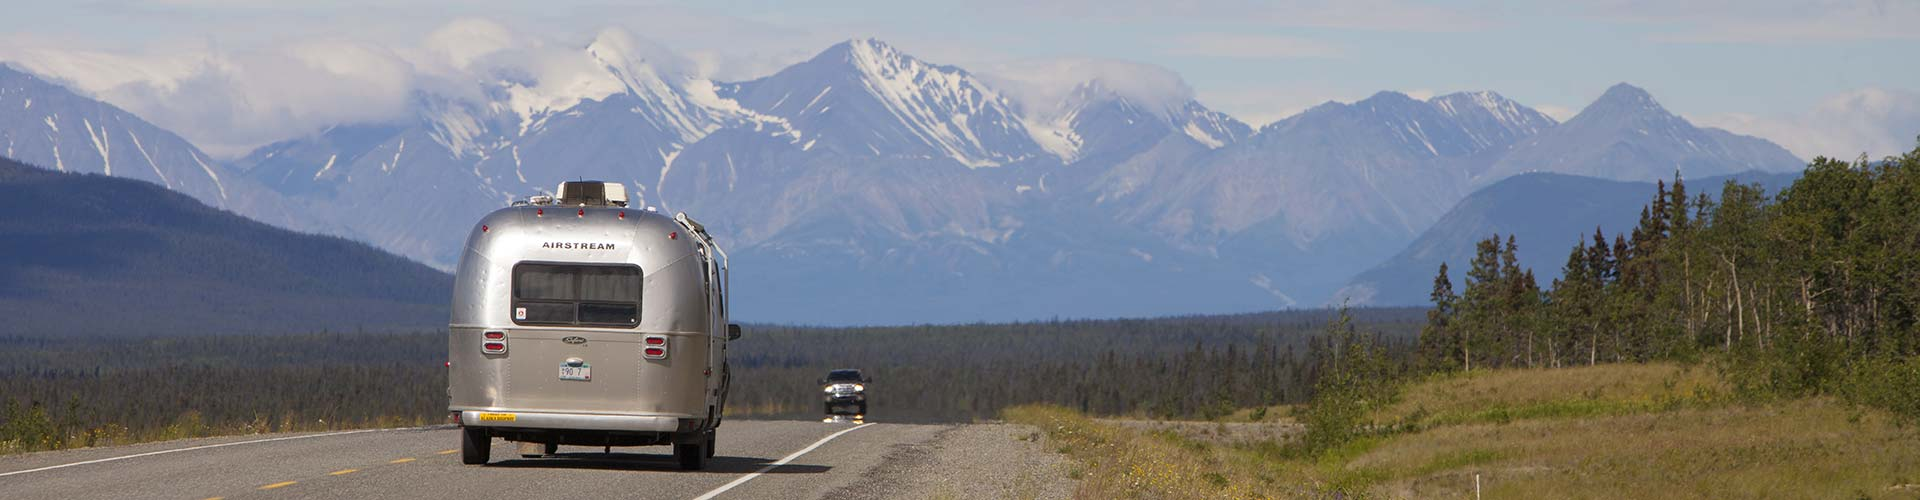 Alaska Highway with scenic Mountain Vista in backdrop